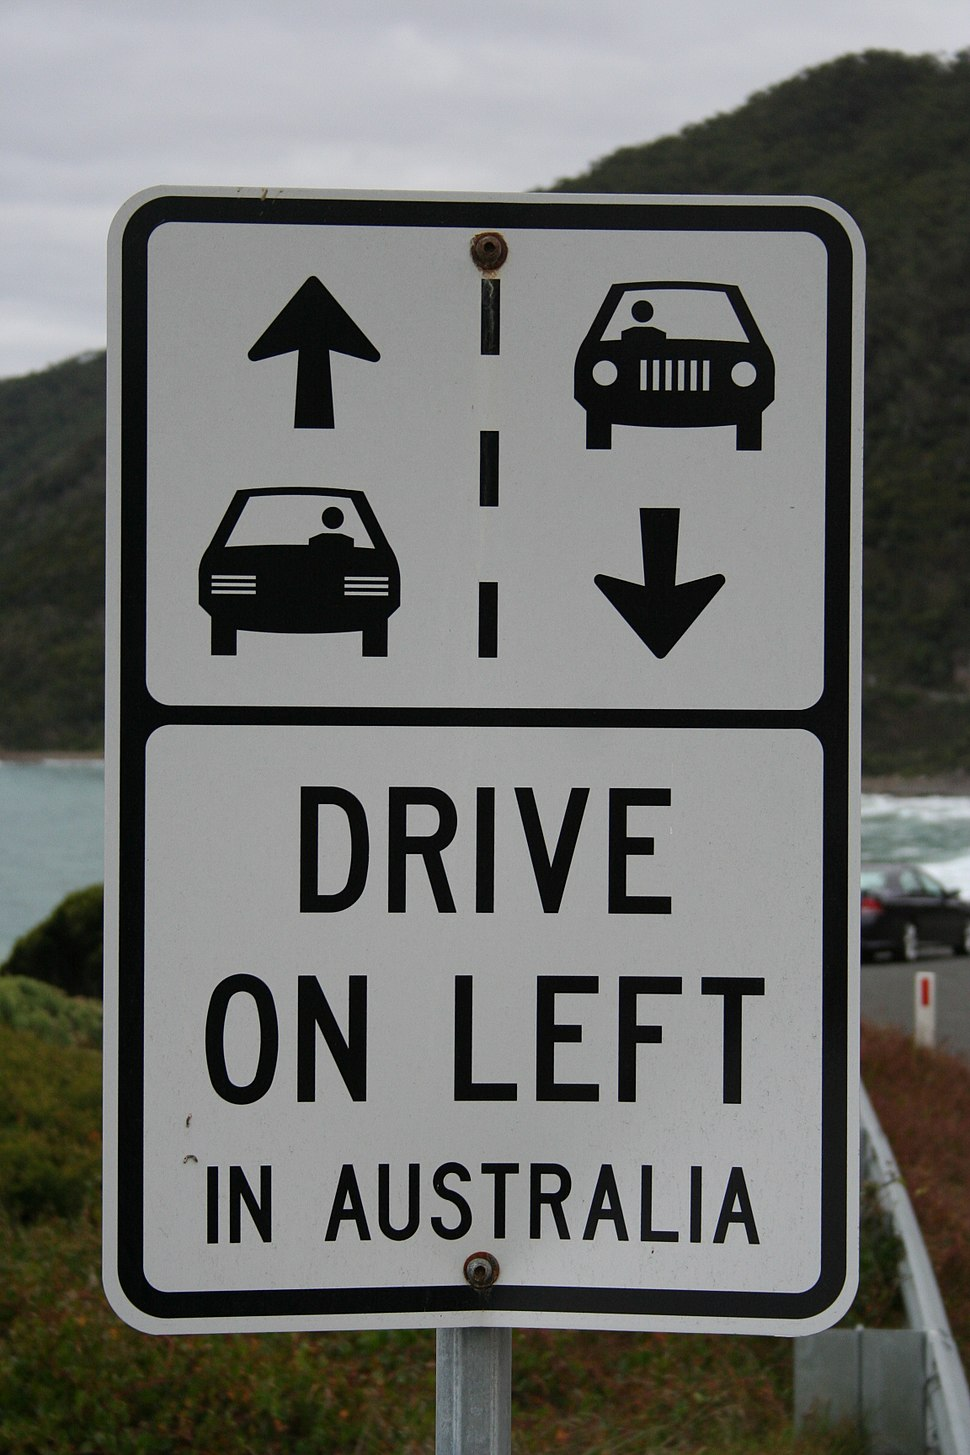 Drive on left in australia